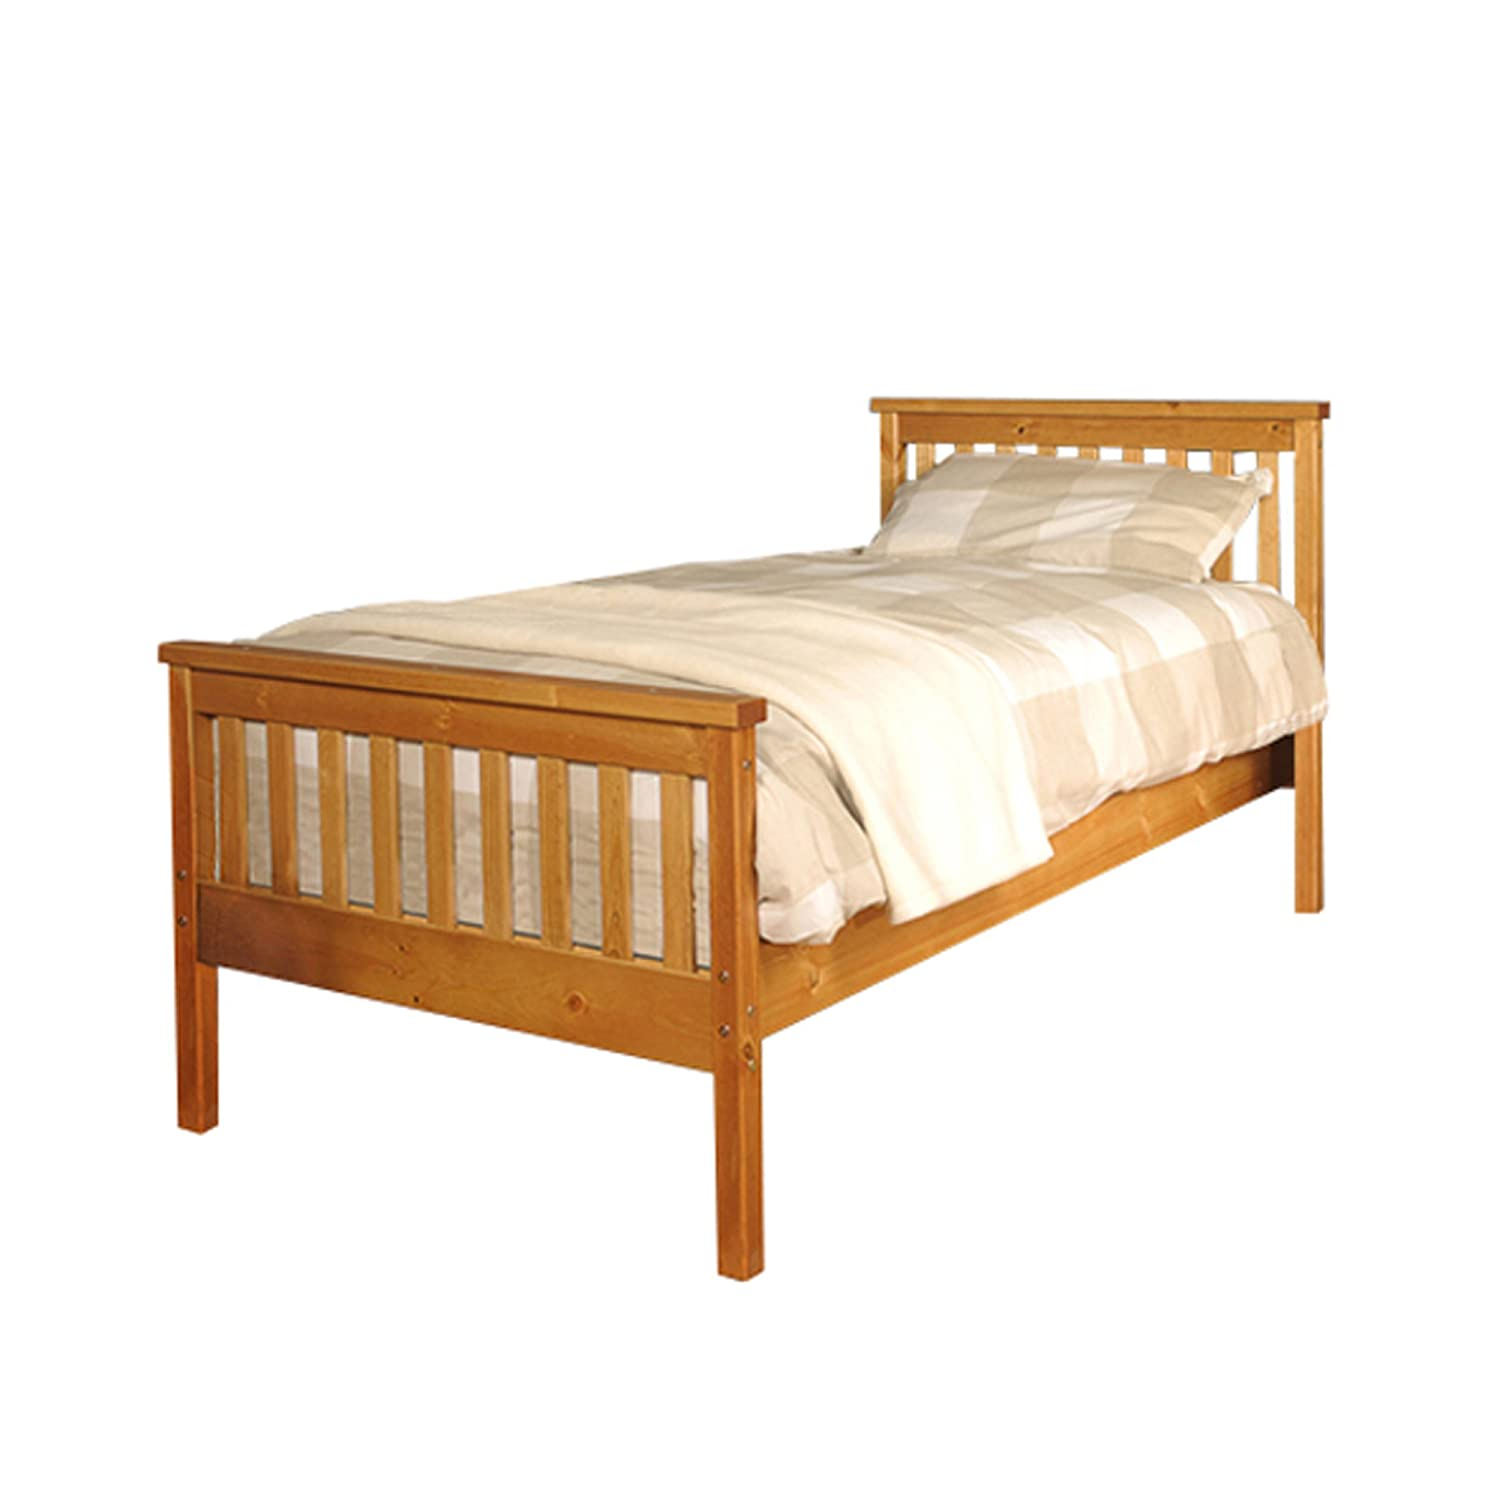 Comfy Living 3ft Single Atlantis Style Wooden Pine Bed Frame in Caramel with Kerri Mattress